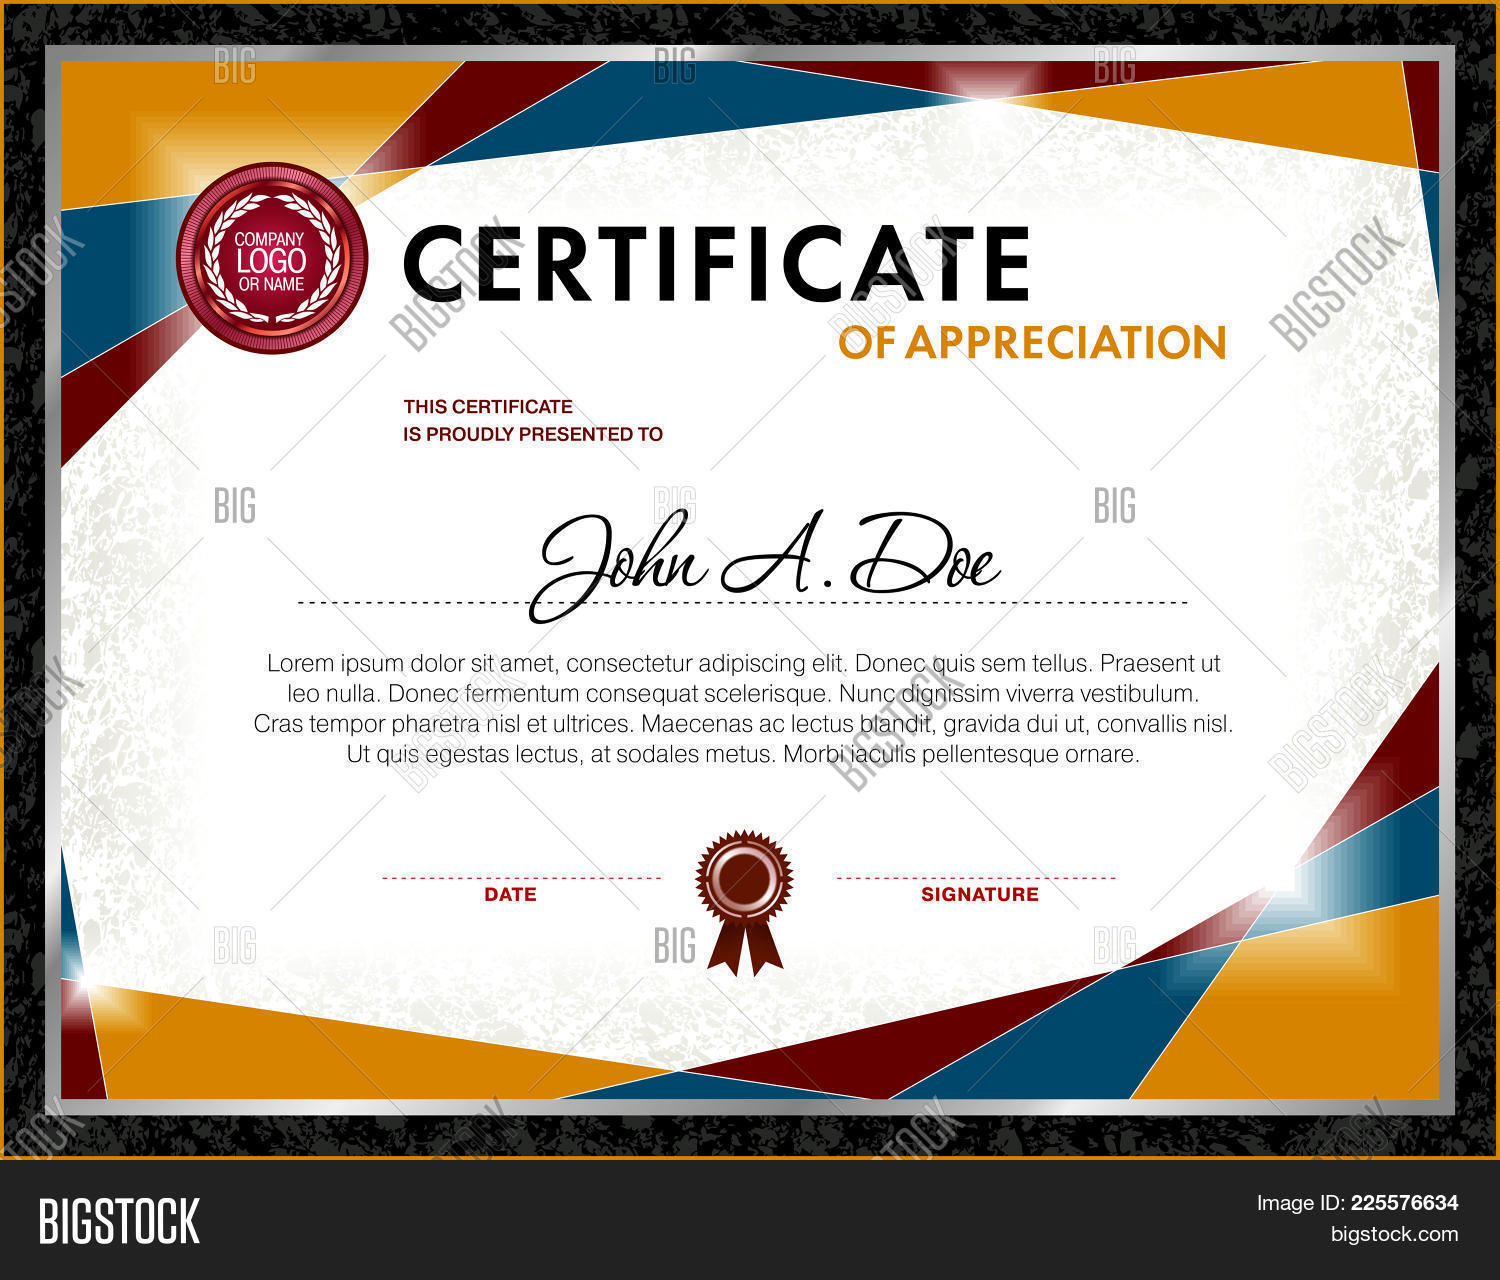 Certificate Vector & Photo (Free Trial) | Bigstock